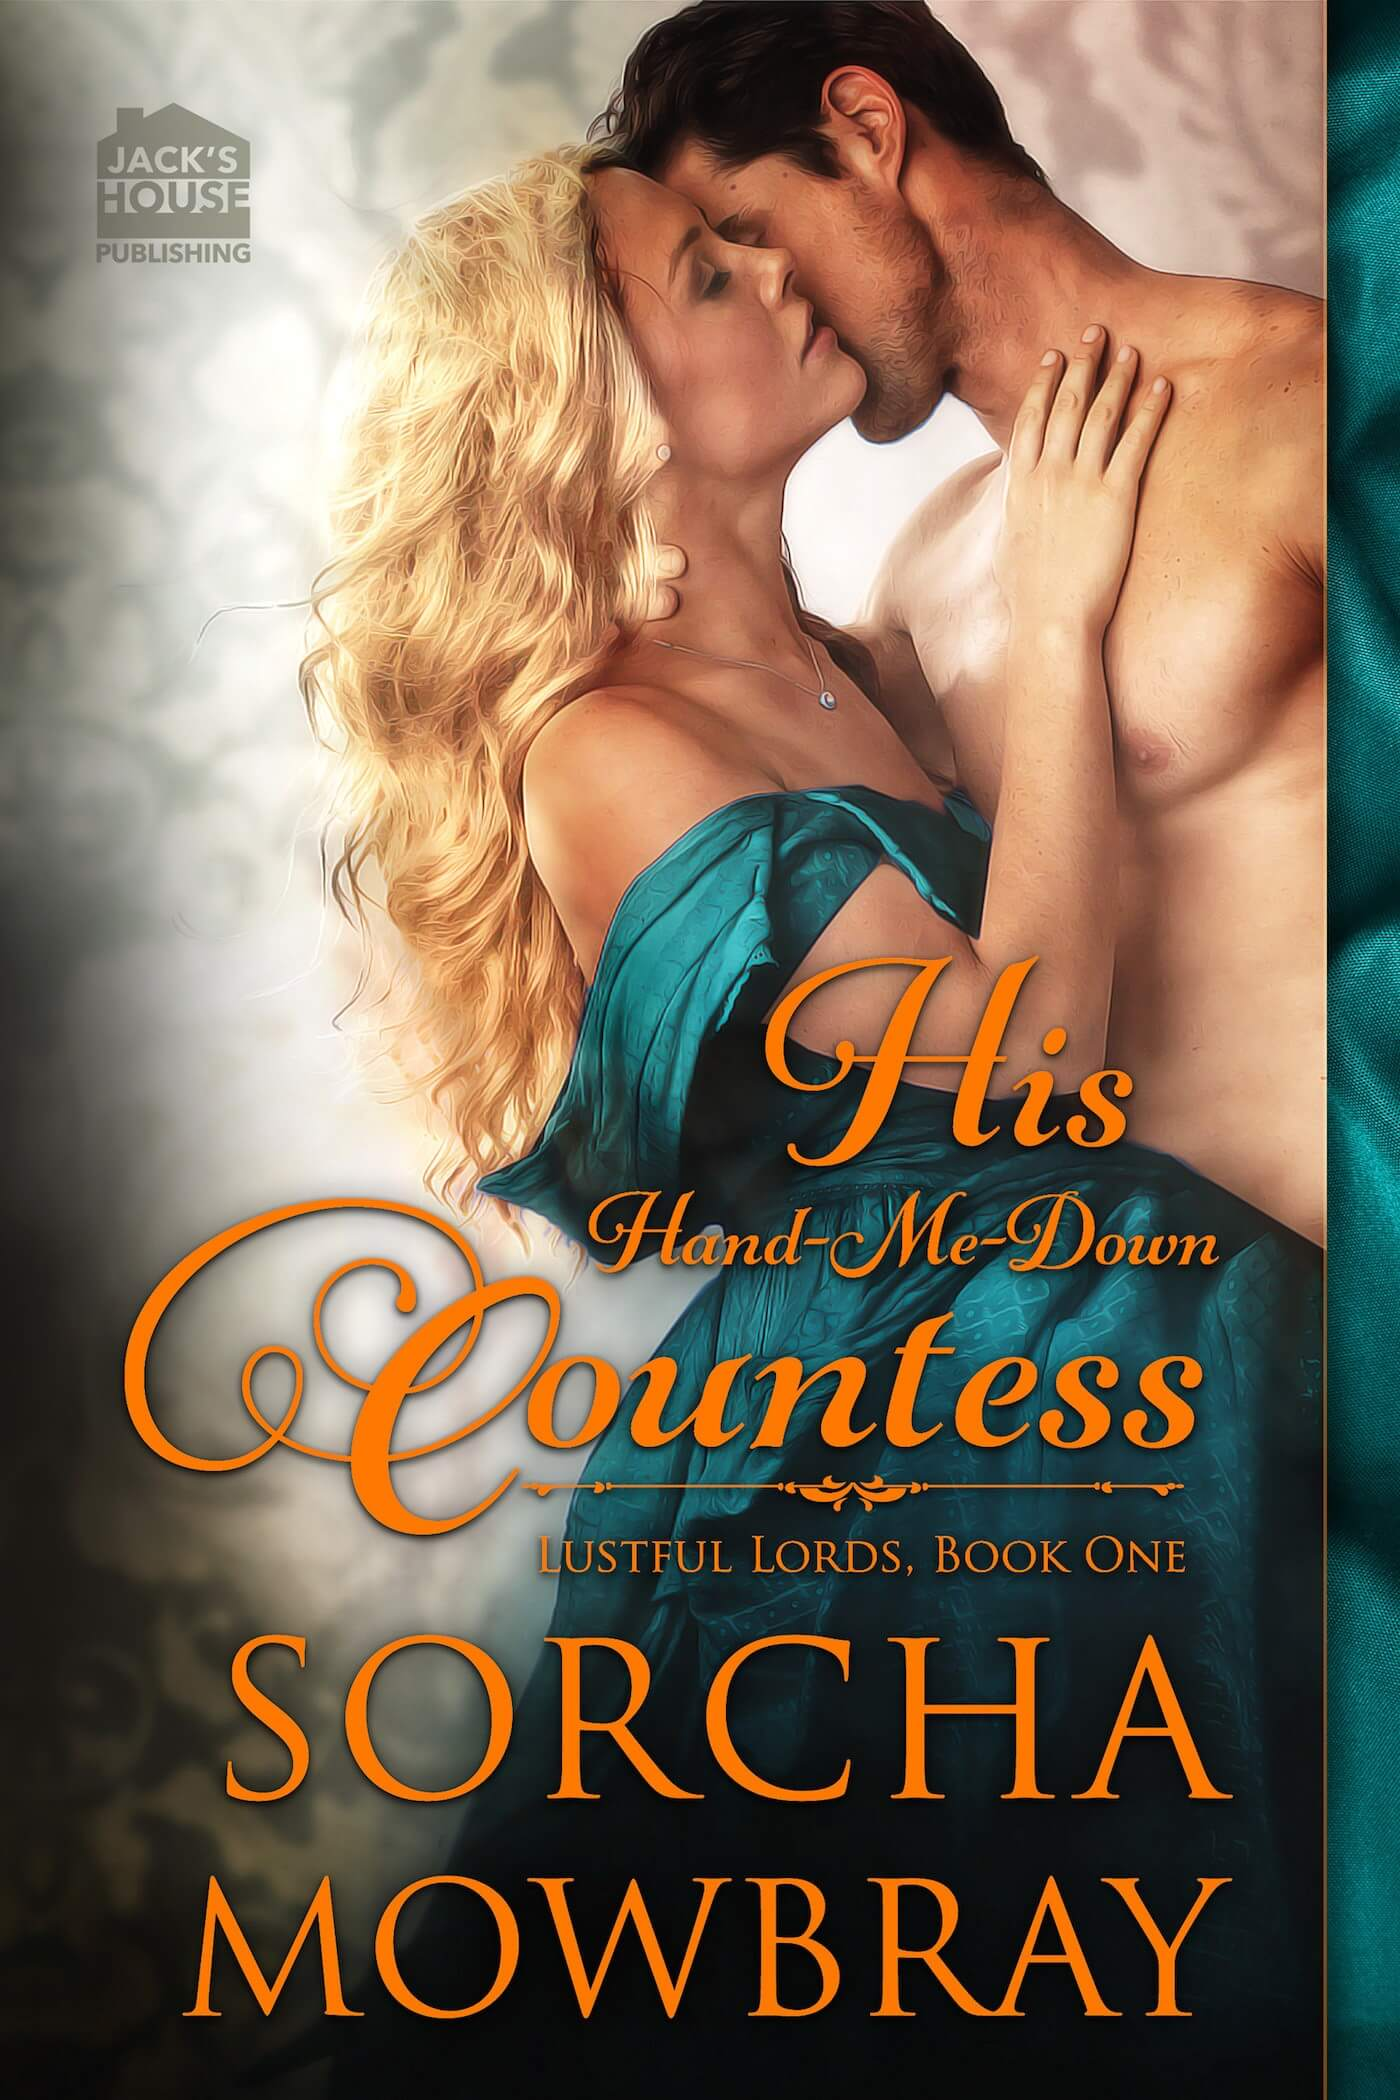 Sorcha Mowbray's His Hand-Me-Down Countess New Release